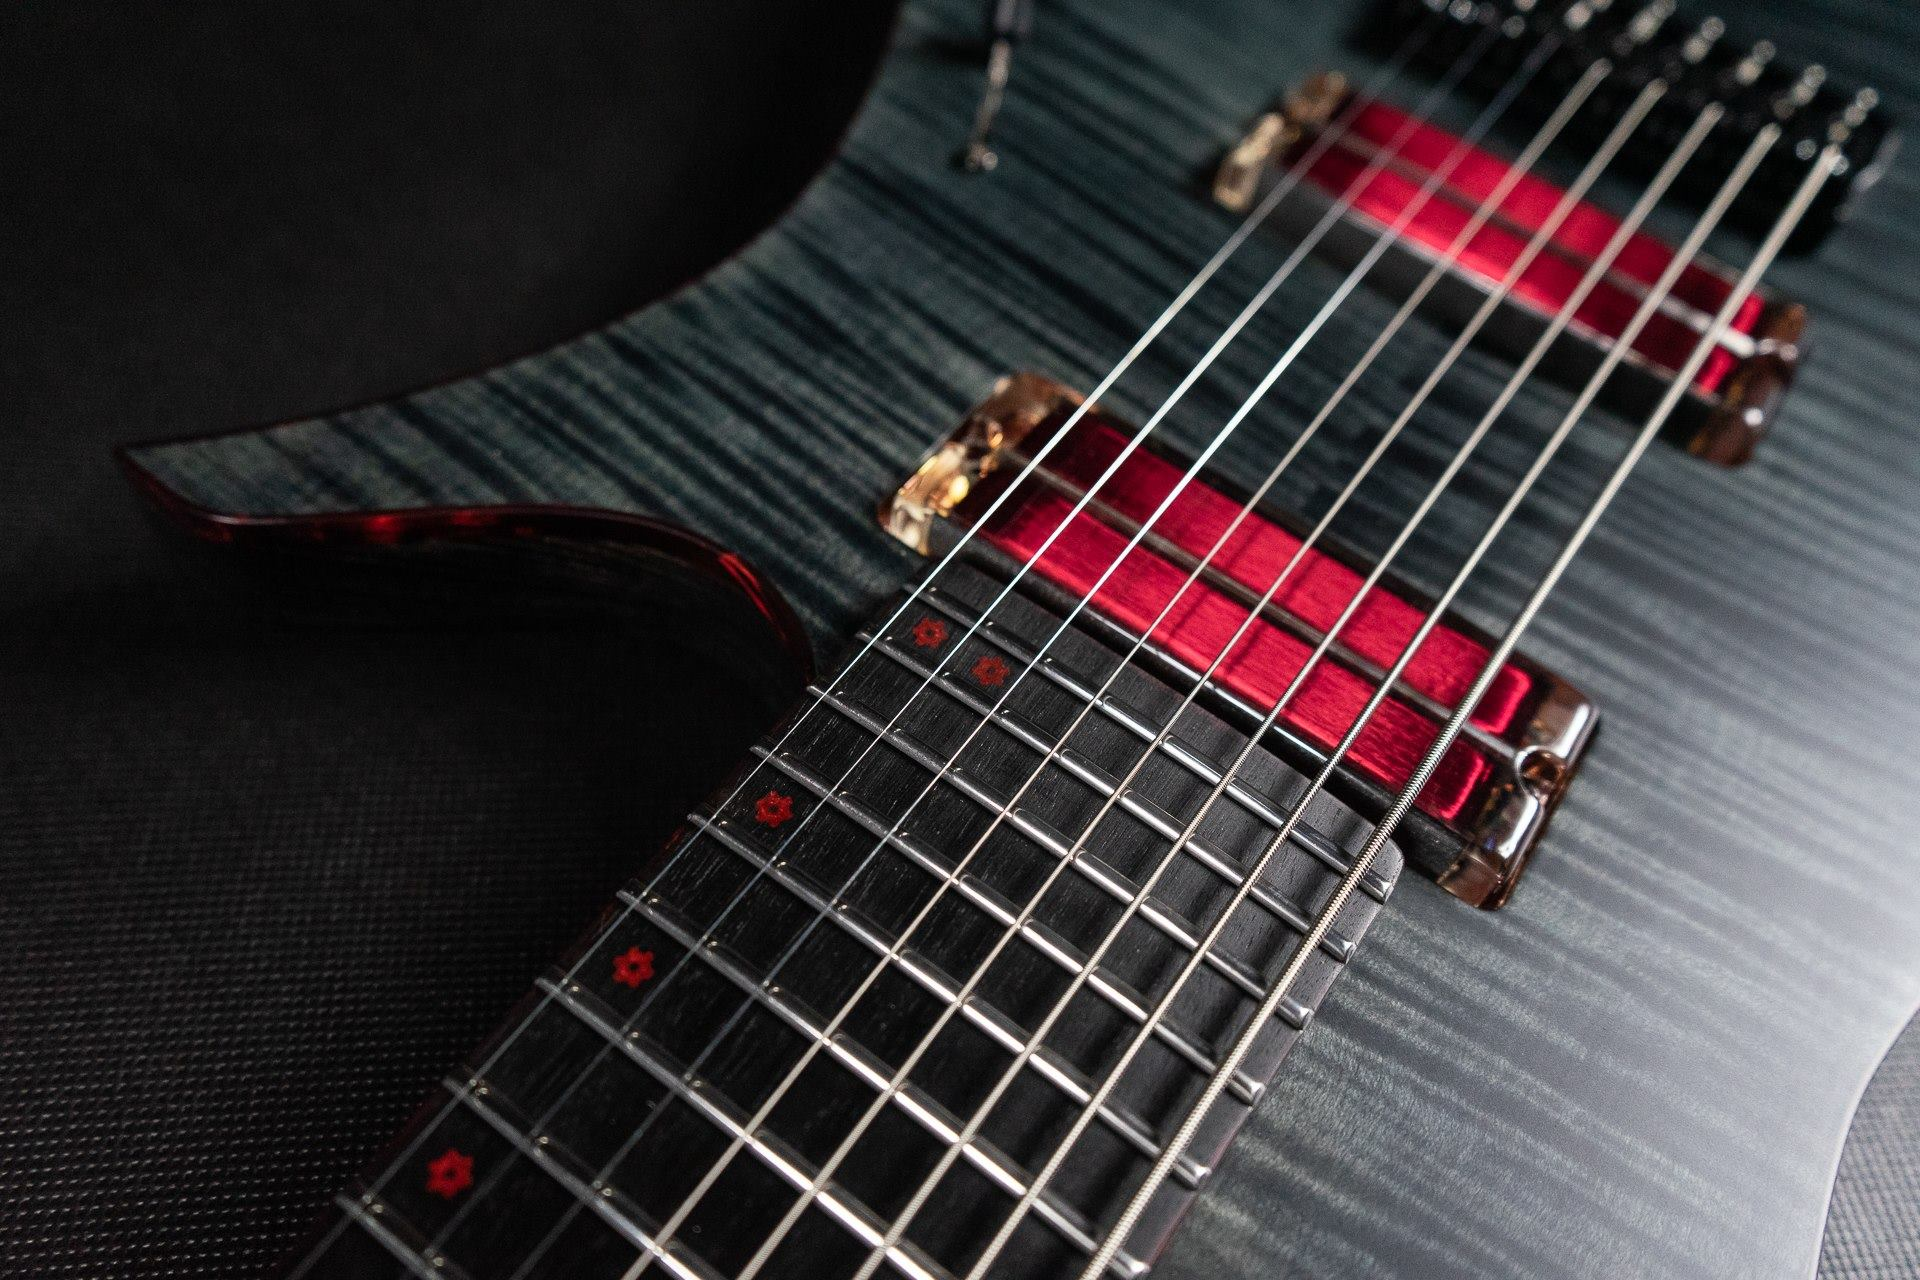 Beautiful Blackat guitar made by Tomek Sławiński with transparent neodymium q-tuners